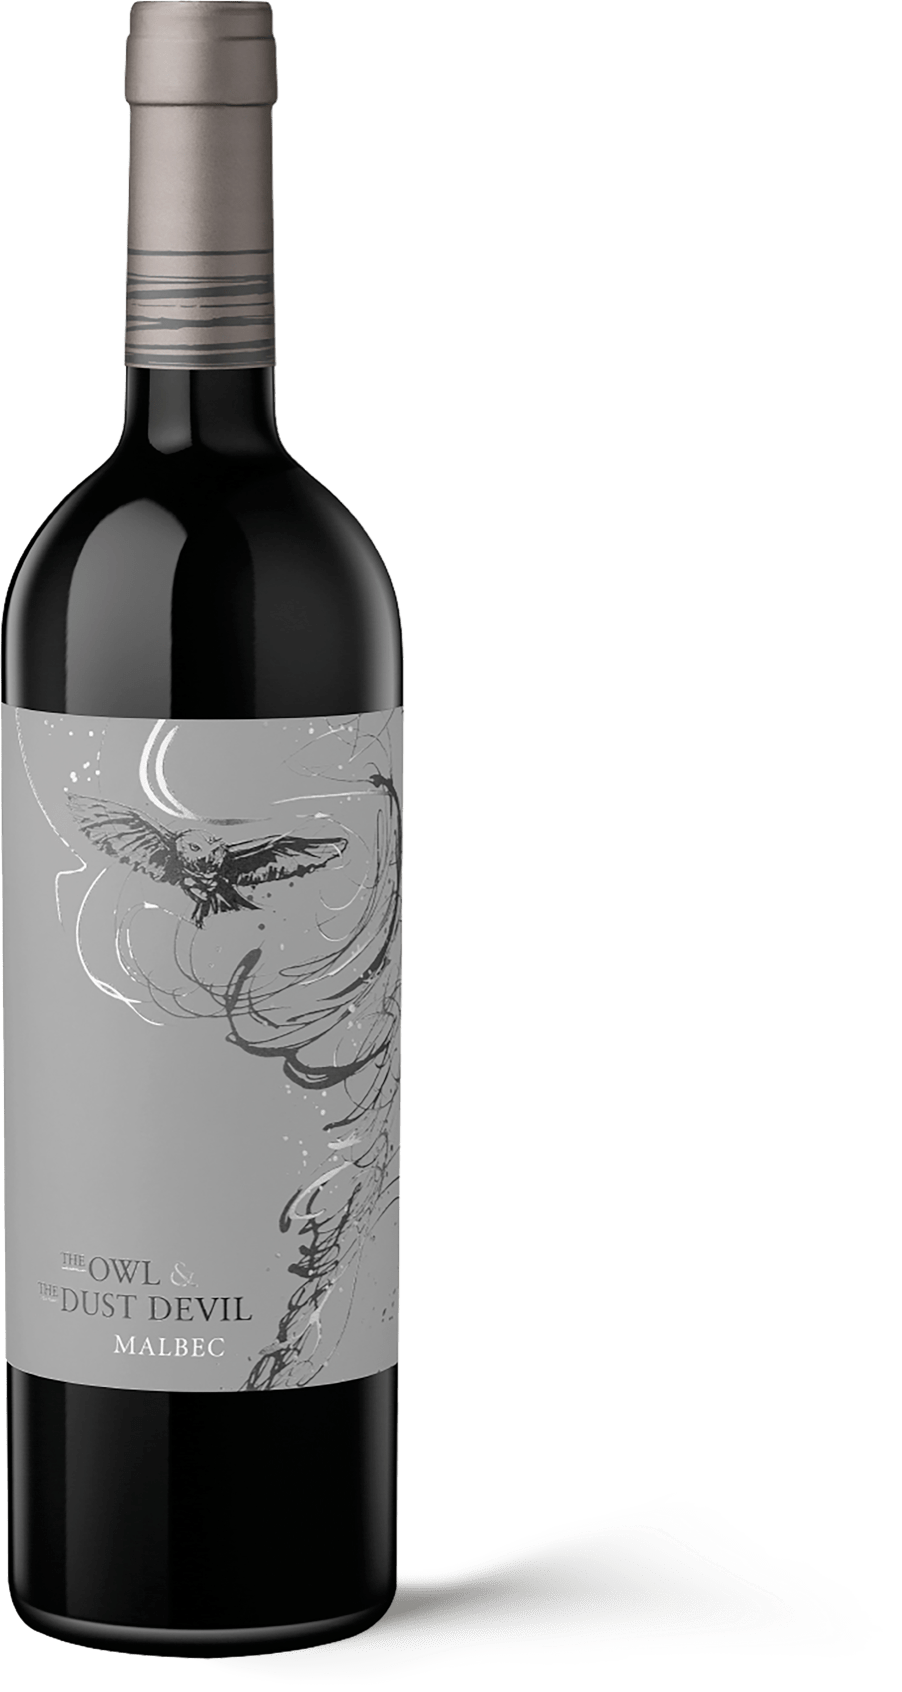 The Owl & The Dust Devil Malbec